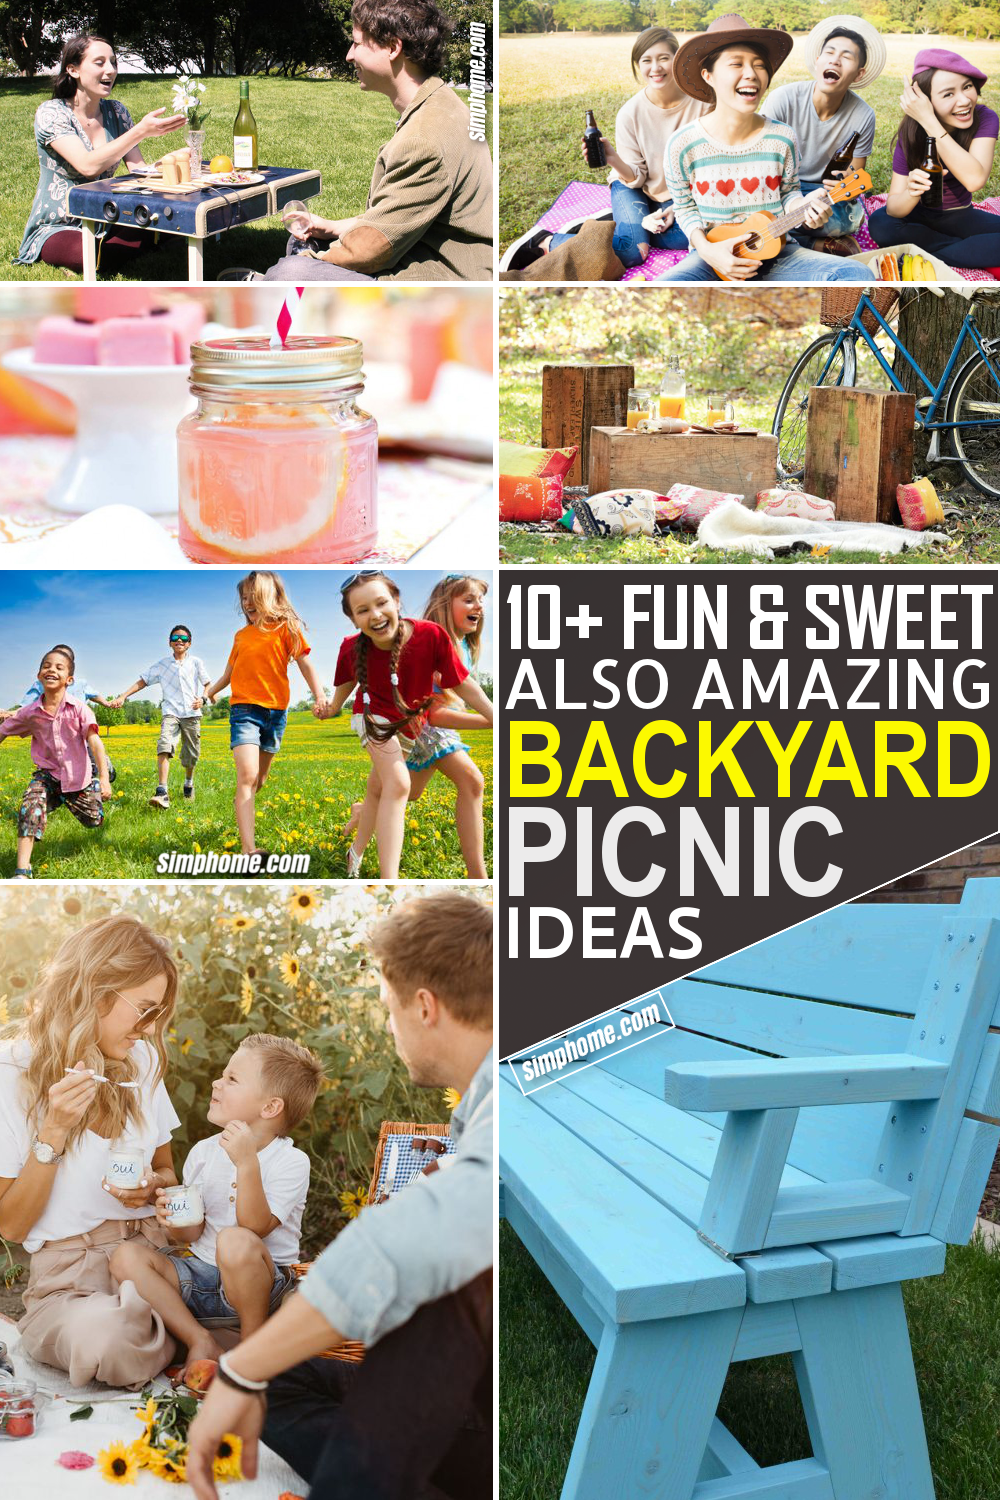 10 Ideas Of How to Build Amazing Backyard Picnic via Simphome.com